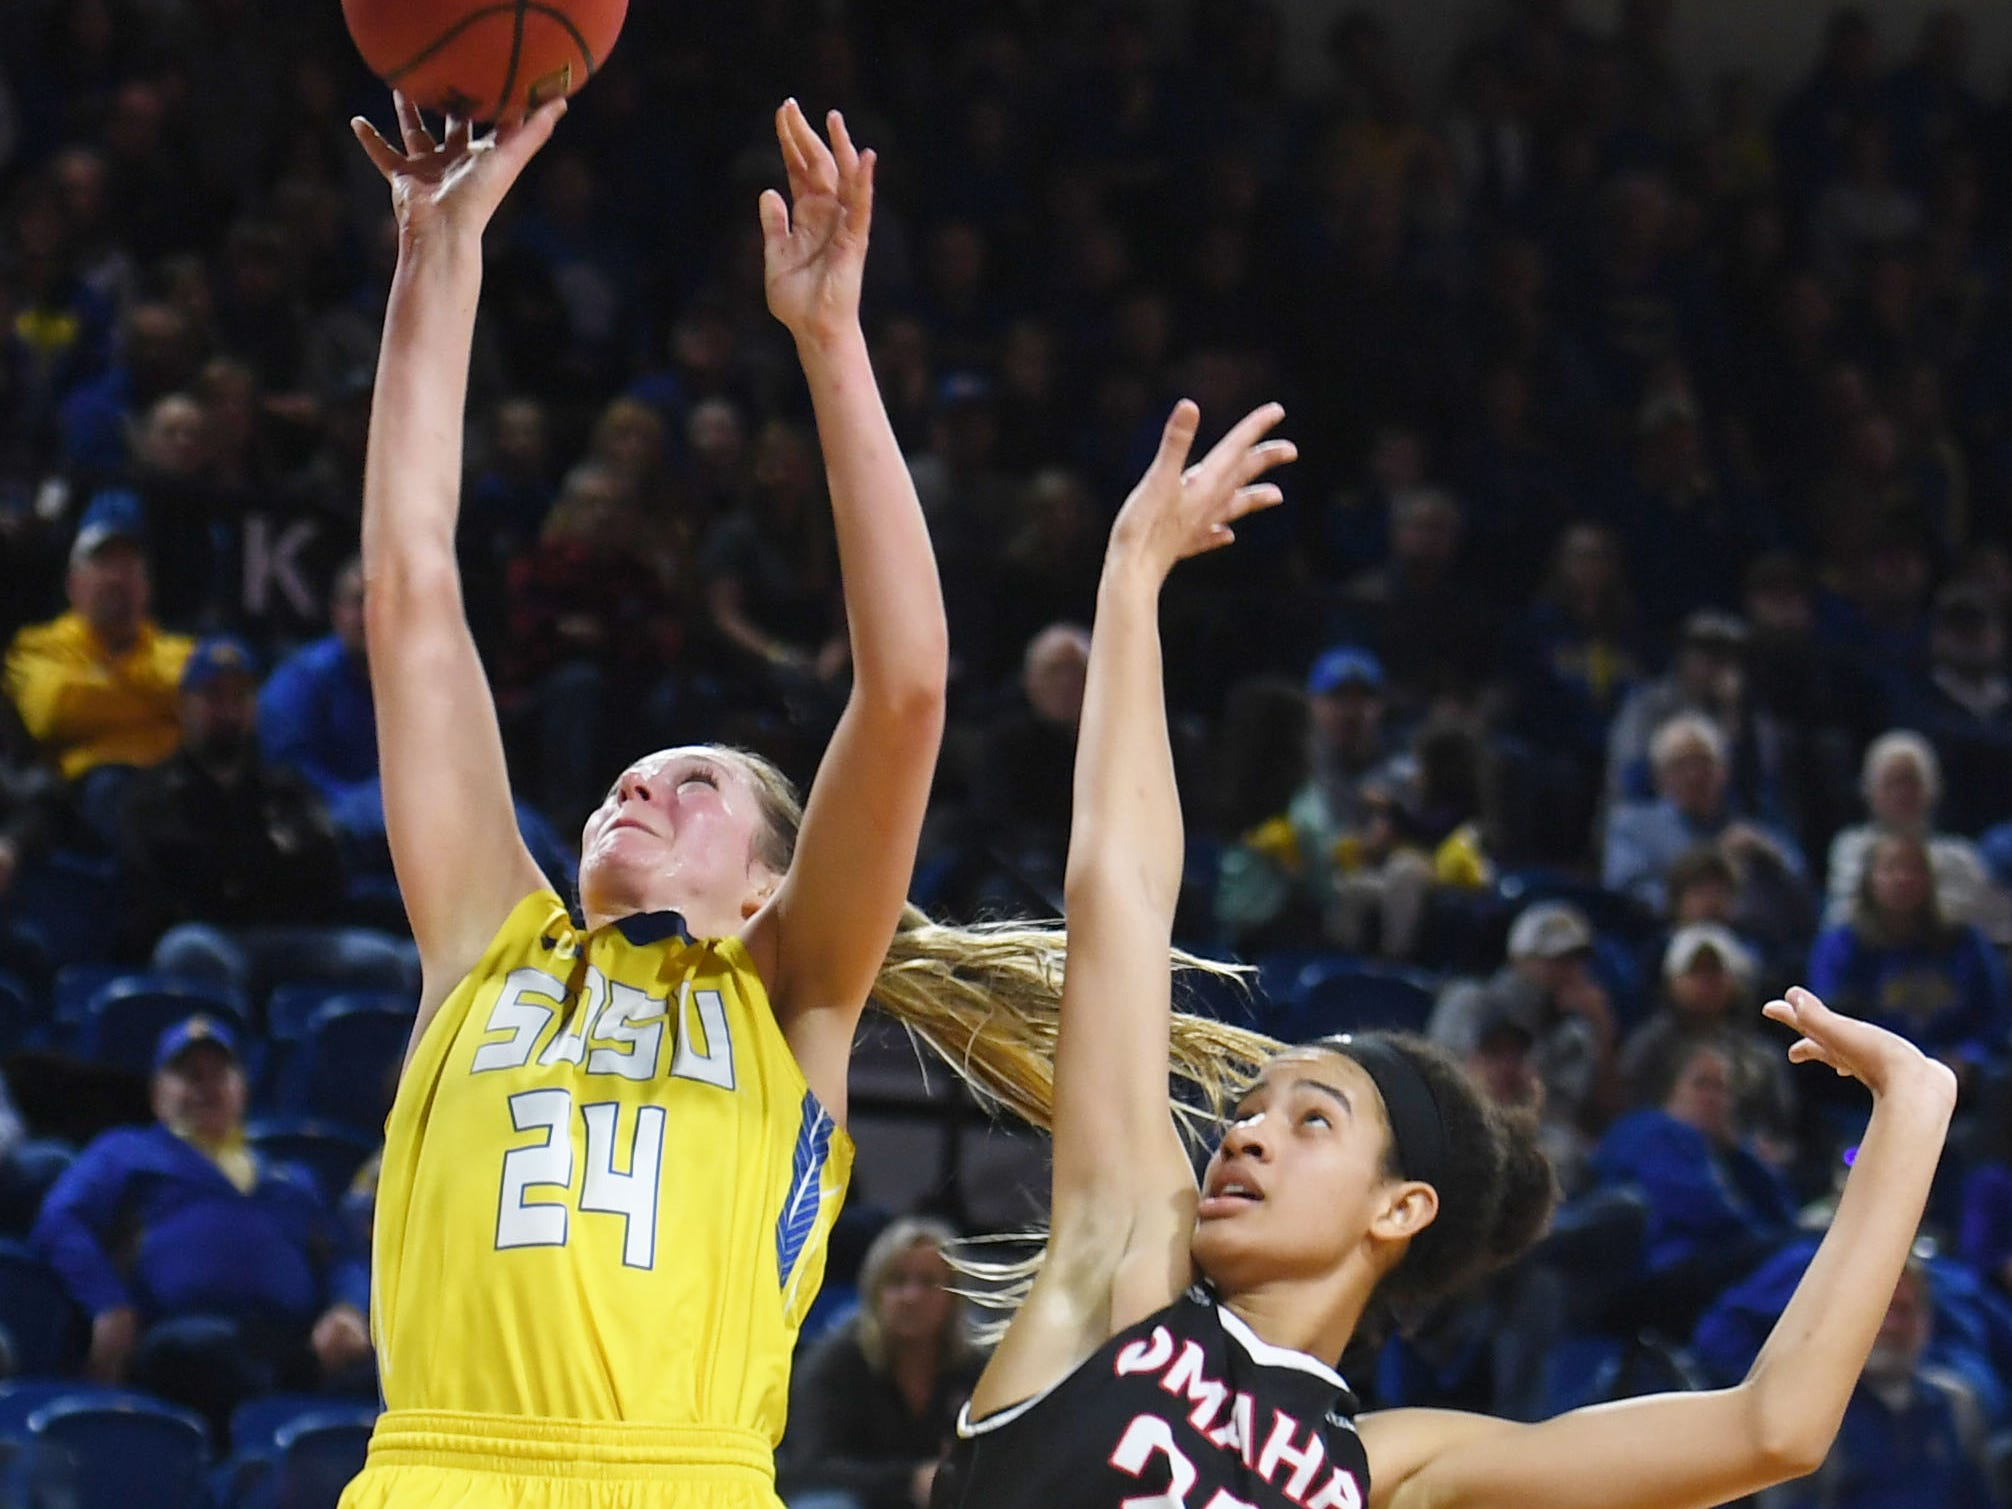 SDSU's Tagyn Larson attempts to score against Omaha during the game Saturday, Jan. 26, at Frost Arena in Brookings.